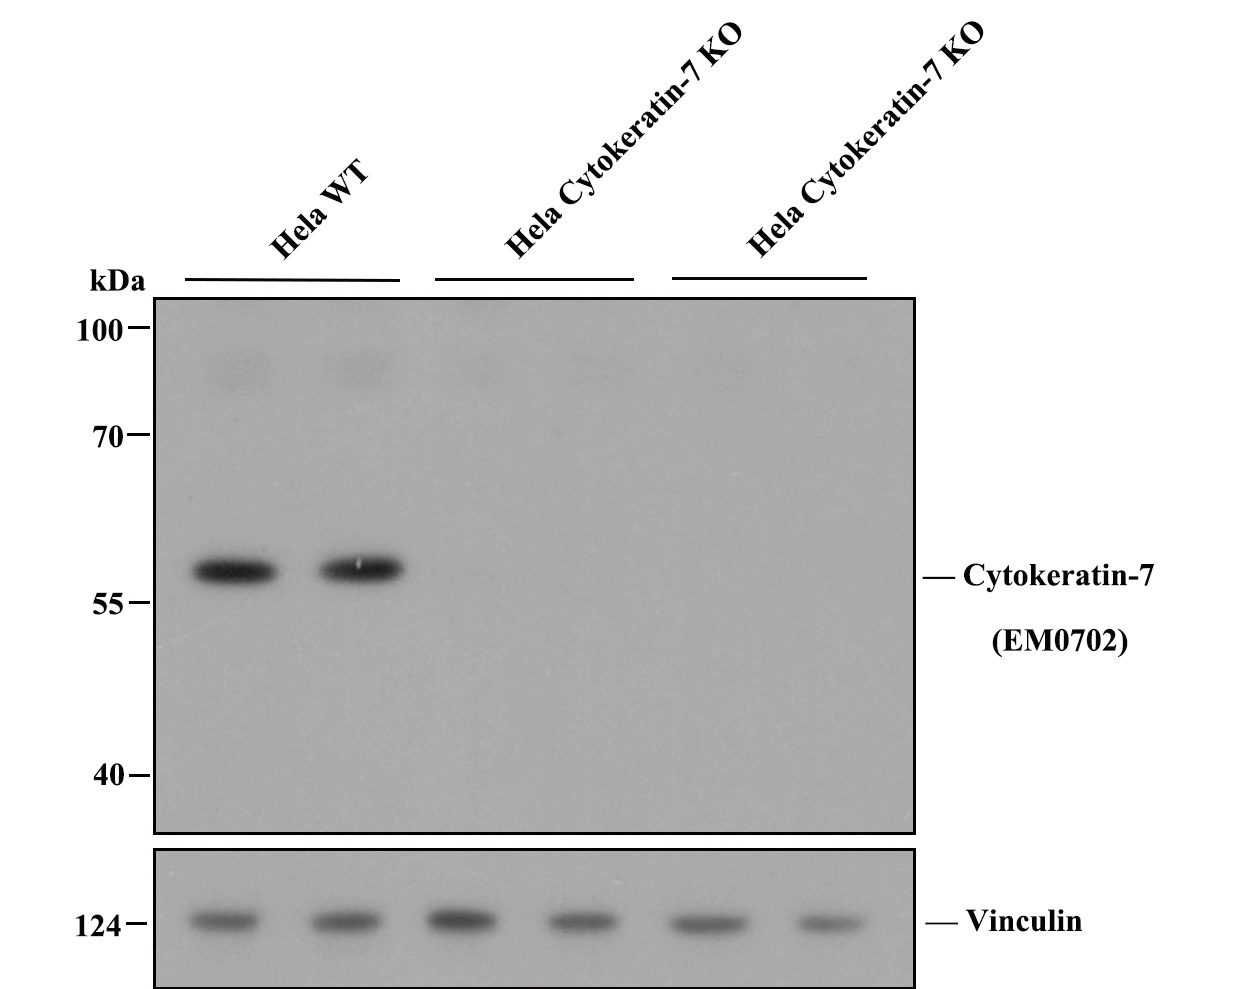 Western blot analysis of Cytokeratin-7 on different lysates. Proteins were transferred to a PVDF membrane and blocked with 5% BSA in PBS for 1 hour at room temperature. The primary antibody (EM0702, 1/500) was used in 5% BSA at room temperature for 2 hours. Goat Anti-Rabbit IgG - HRP Secondary Antibody (HA1001) at 1:200,000 dilution was used for 1 hour at room temperature.<br /> Positive control: <br /> Lane 1: MCF-7 cell lysate<br /> Lane 2: A549 cell lysate<br /> Lane 3: Hela cell lysate<br /> Lane 4: HepG2 cell lysate<br /> Lane 5: SK-Br-3 cell lysate<br /> Lane 6: SKOV-3 cell lysate<br /> Lane 7: SW1990 cell lysate